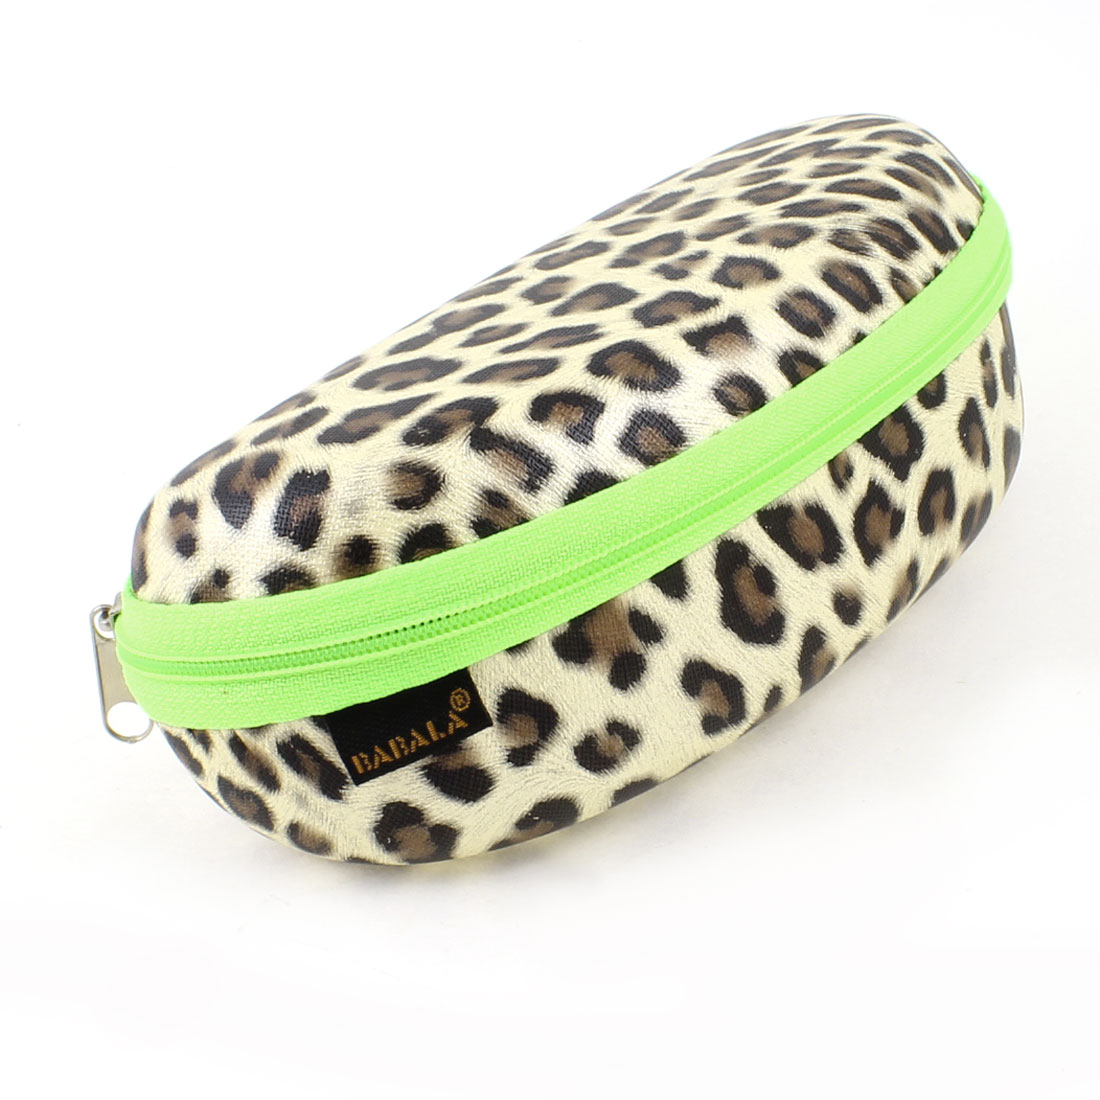 "Leopard Print Flannel Lining Zippered Beige Sunglasses Box Case 2.6"" High"